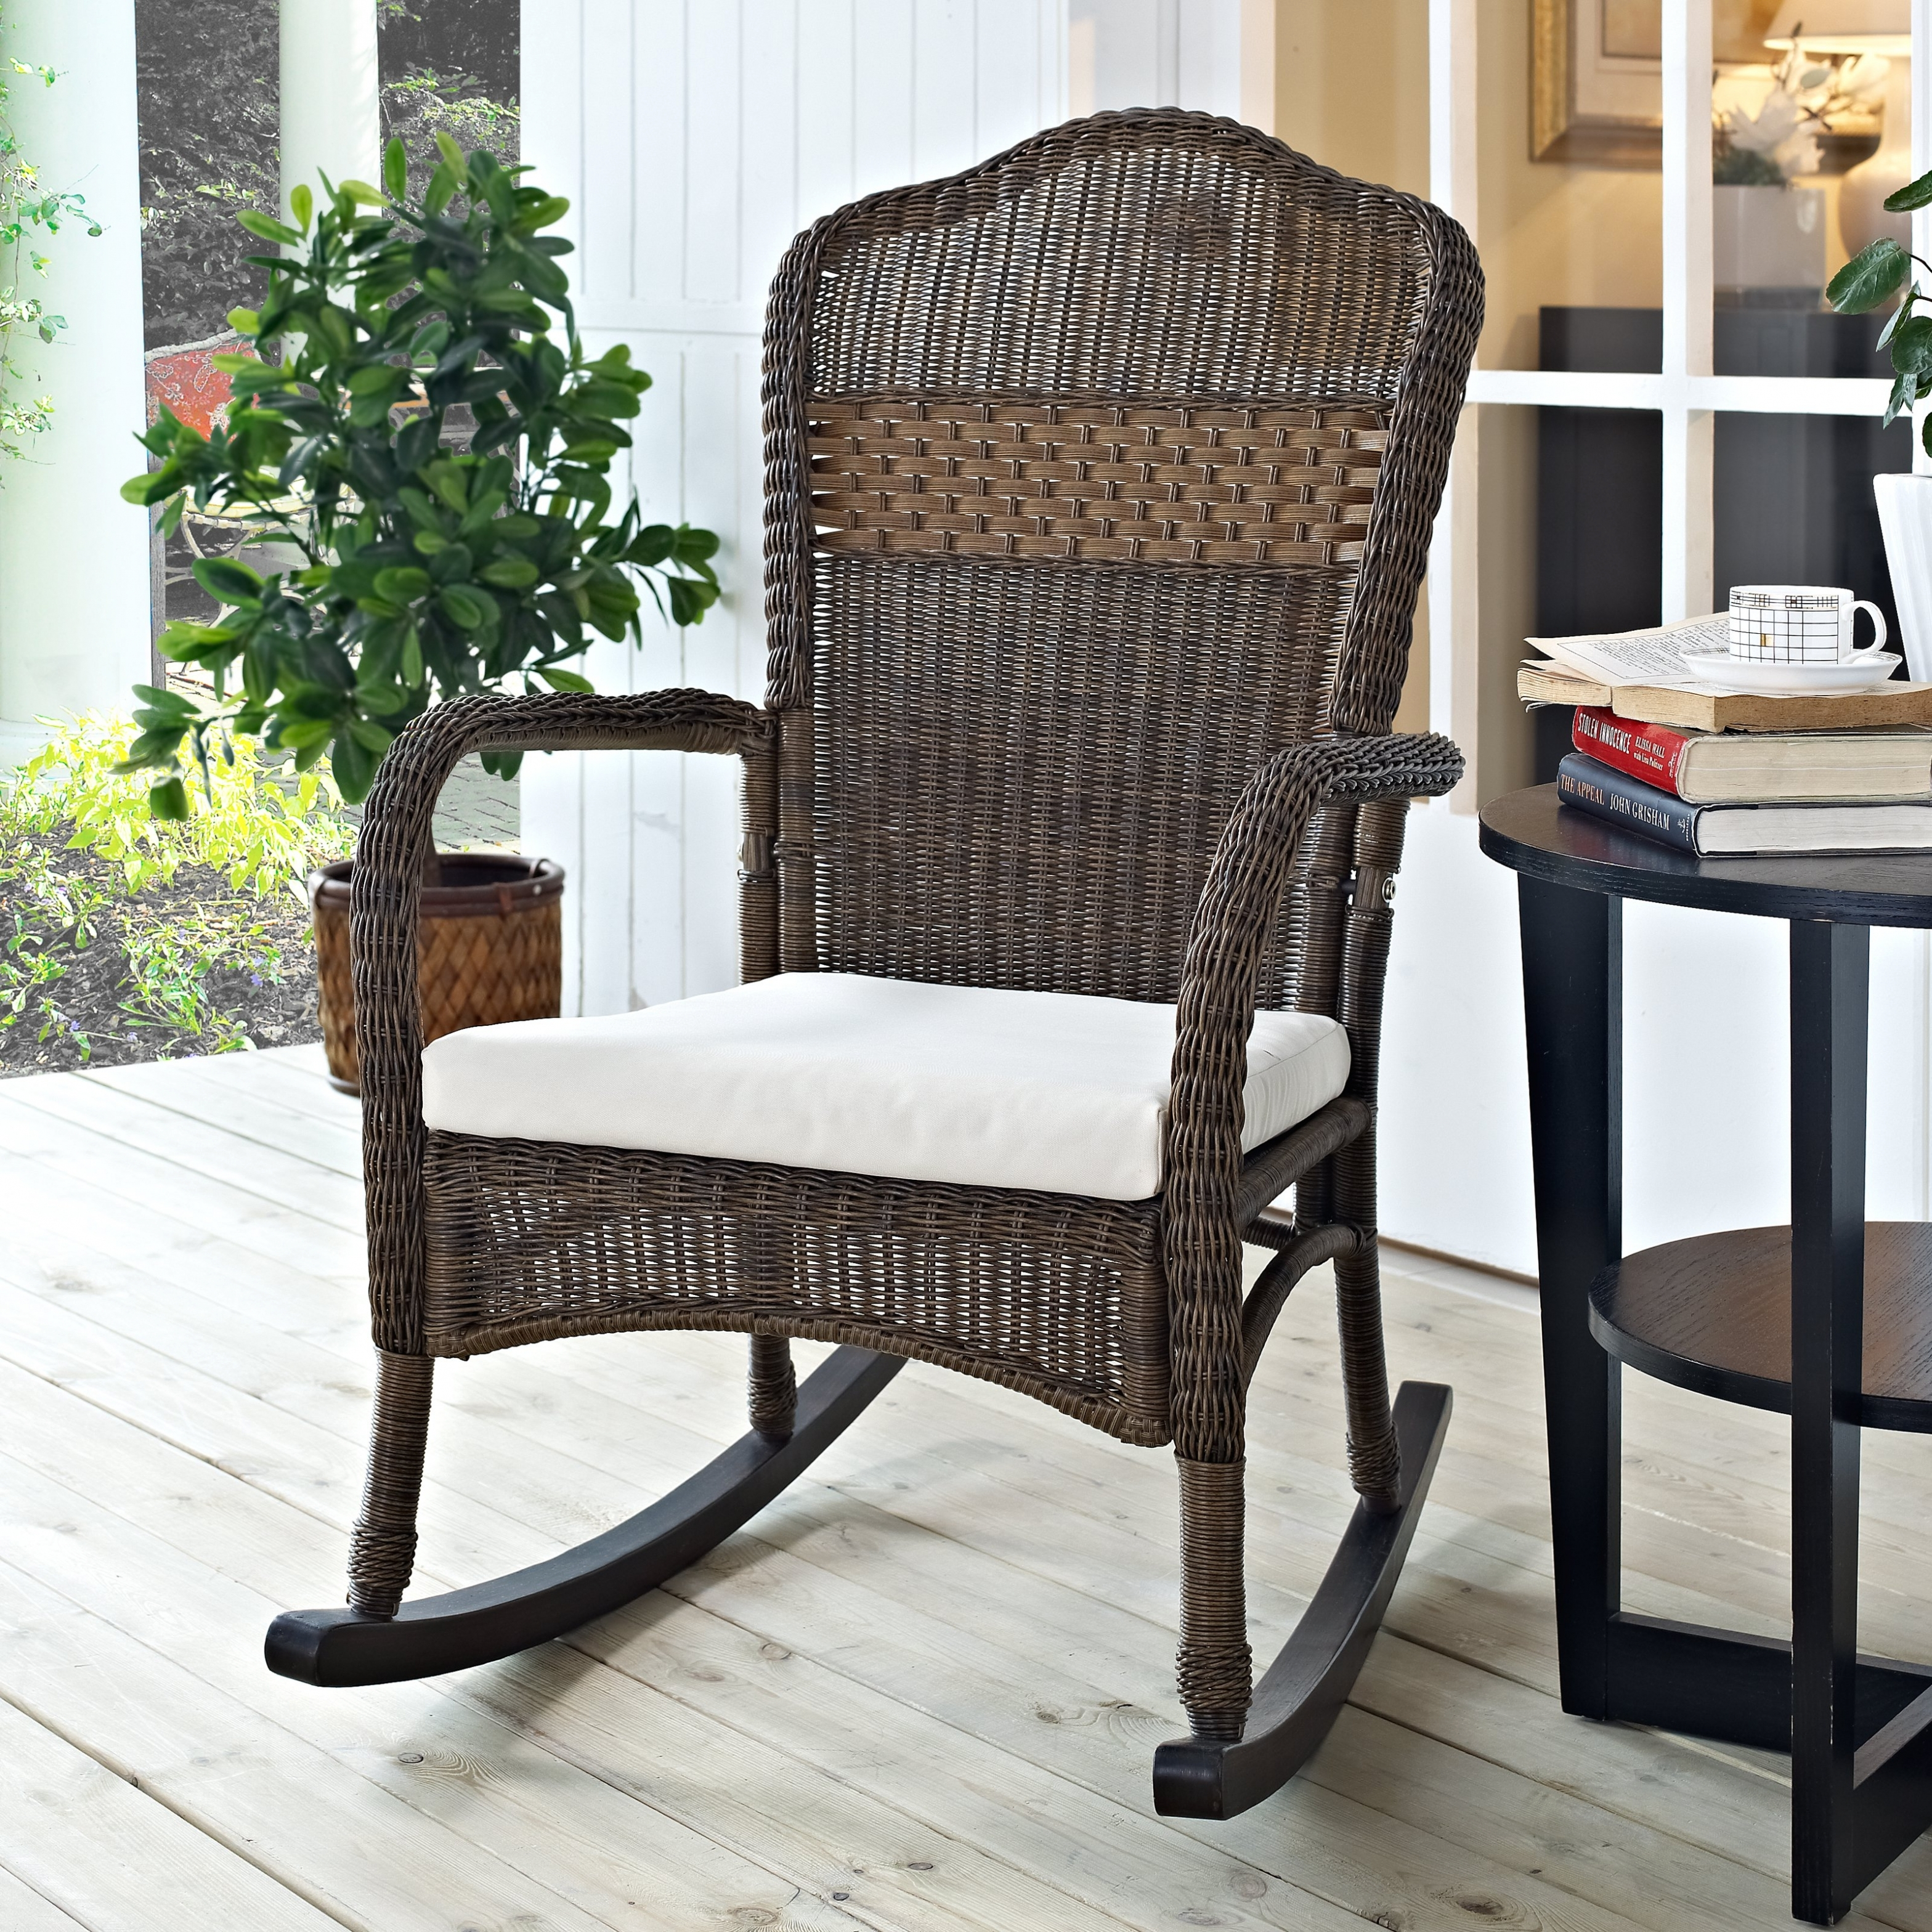 Chairs: Coral Coast Casco Bay Resin Wicker Rocking Chair With Pertaining To Outdoor Rocking Chairs With Cushions (#3 of 15)